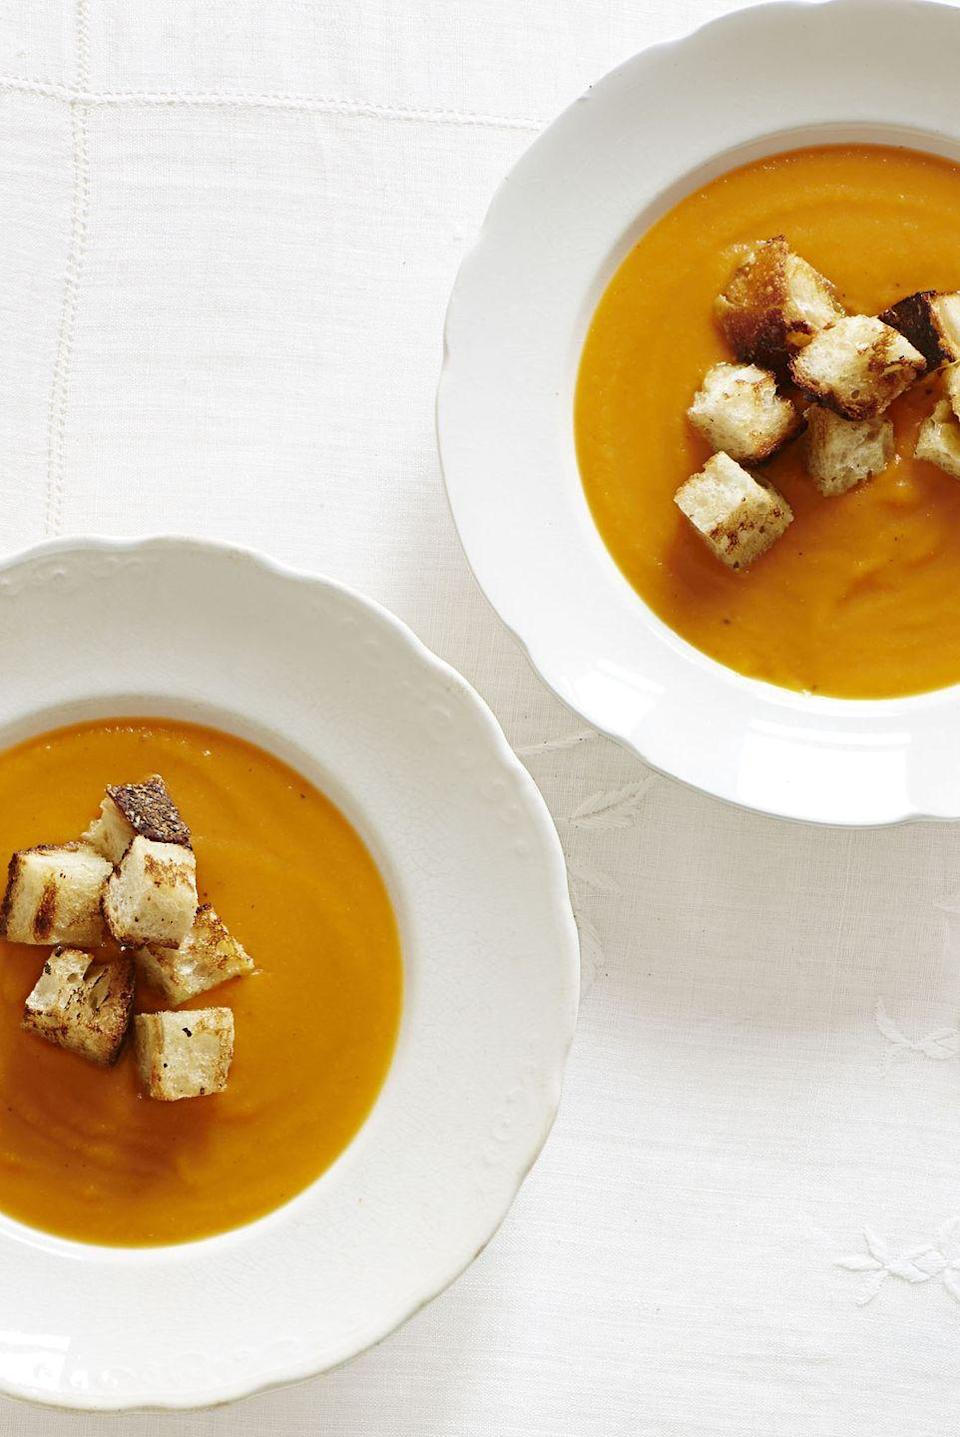 """<p>Start off your feast with this easy-to-make — and easy-to-eat — one-pot soup.</p><p><em><a href=""""https://www.goodhousekeeping.com/food-recipes/a14444/winter-squash-soup-recipe-ghk1113/"""" rel=""""nofollow noopener"""" target=""""_blank"""" data-ylk=""""slk:Get the recipe for Winter Squash Soup »"""" class=""""link rapid-noclick-resp"""">Get the recipe for Winter Squash Soup »</a></em></p><p><strong>RELATED: </strong><a href=""""https://www.goodhousekeeping.com/holidays/thanksgiving-ideas/g4734/butternut-squash-soup-recipes/"""" rel=""""nofollow noopener"""" target=""""_blank"""" data-ylk=""""slk:20 Butternut Squash Soup Recipes to Warm Up Your Thanksgiving"""" class=""""link rapid-noclick-resp"""">20 Butternut Squash Soup Recipes to Warm Up Your Thanksgiving</a></p>"""